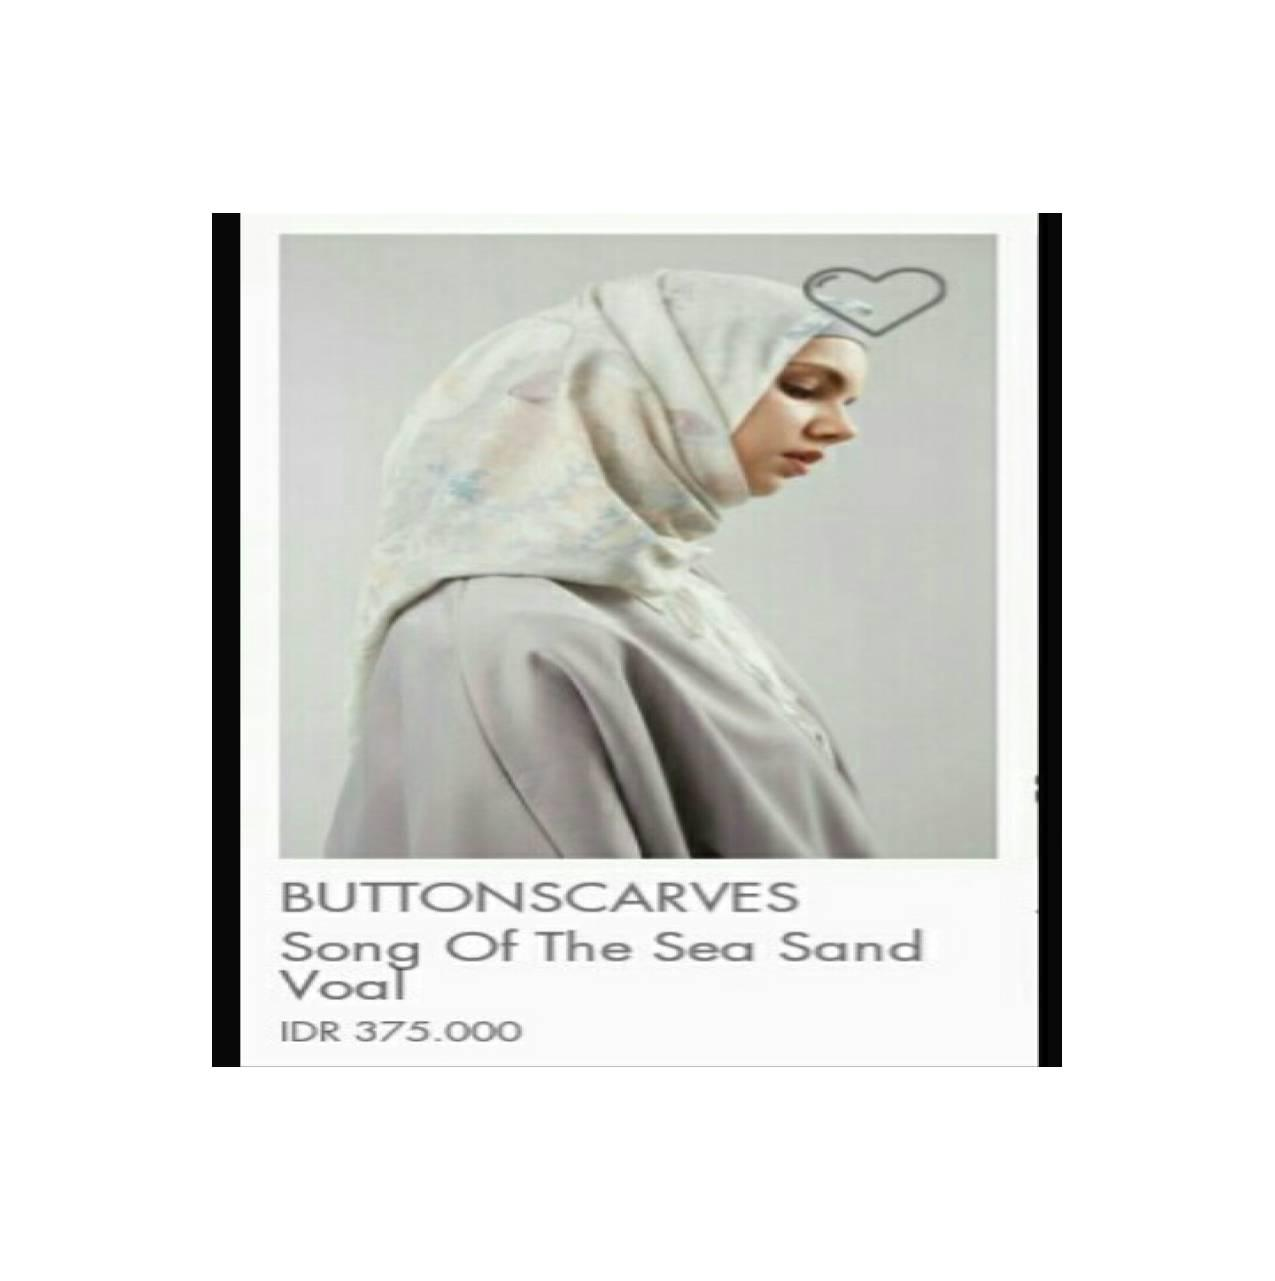 Hijabenka - song of the sea Voal by Buttonscarves